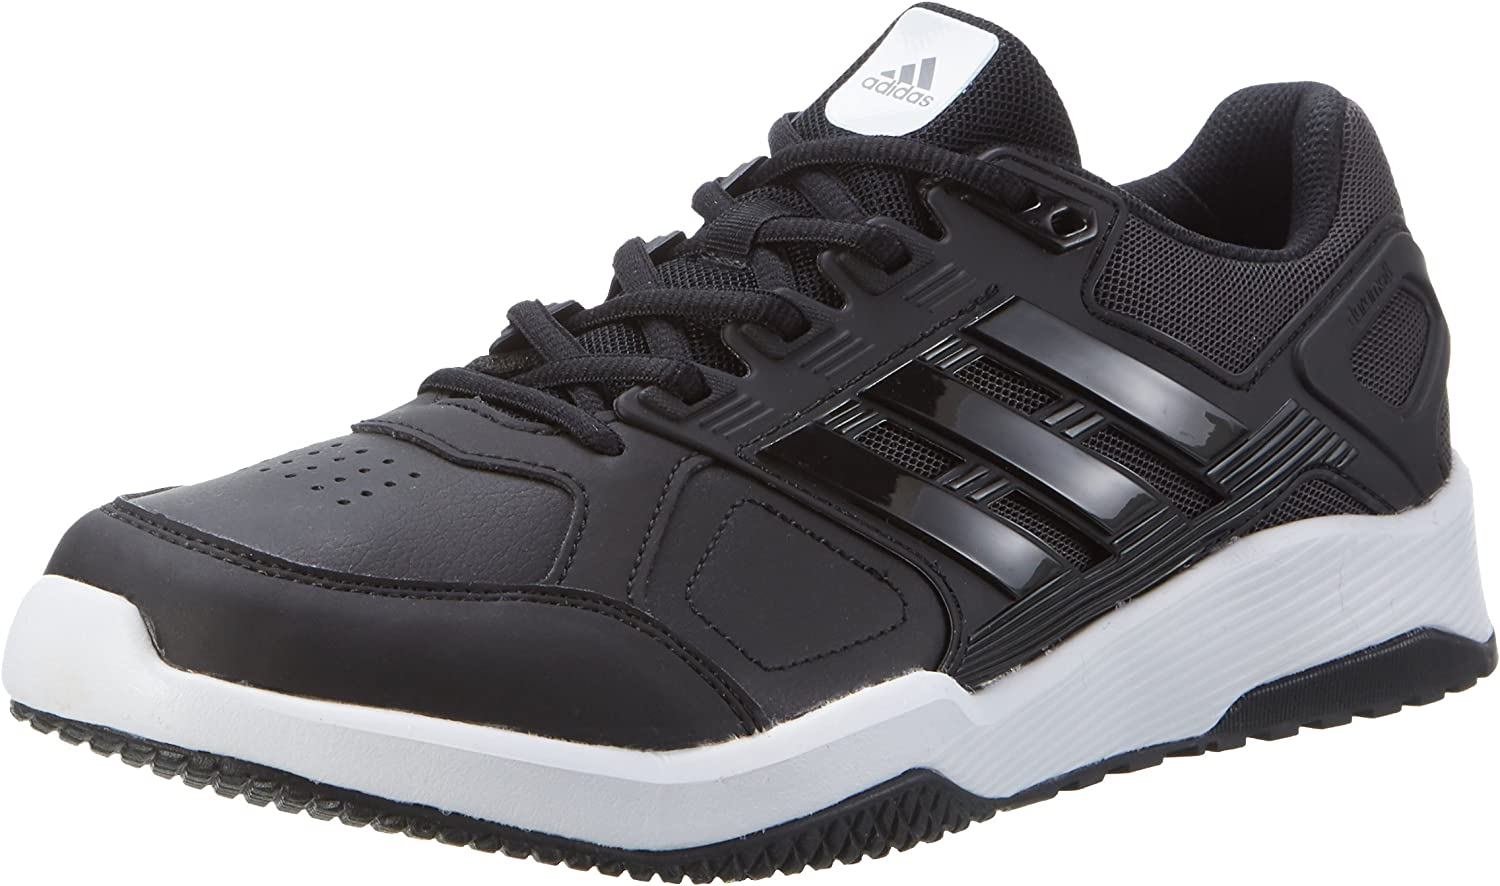 Cabeza uno proporcionar  adidas Men's Duramo 8 Trainer M Sneakers: Amazon.co.uk: Shoes & Bags